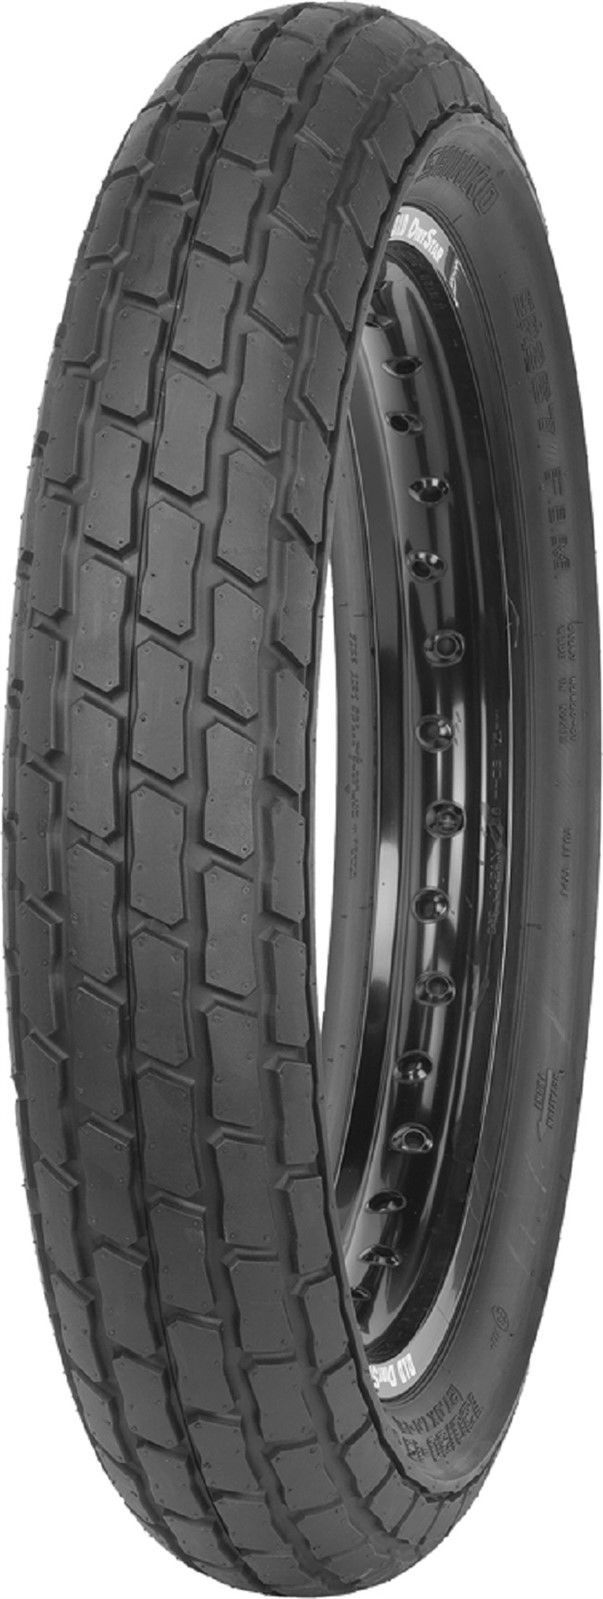 New Shinko SR267 Front 130/80-19 Hard Compound Flat Track Racing  67H DOT